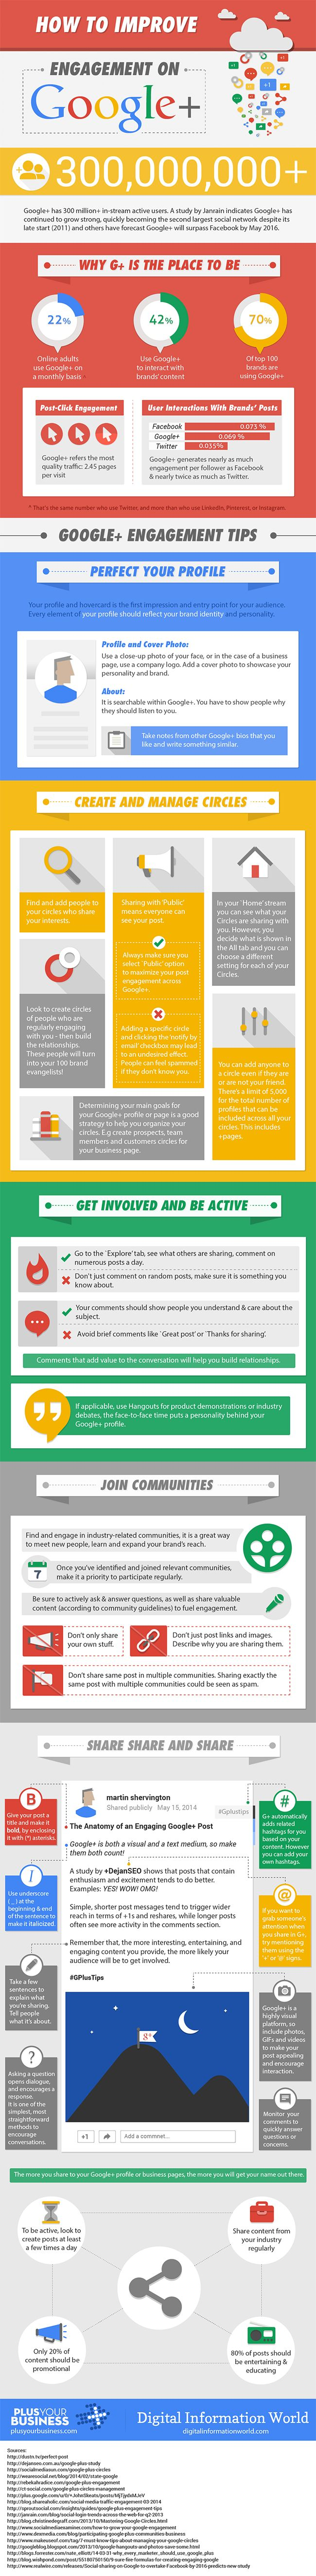 How to increase engagement on Google Plus. For more social media marketing tips and resources visit www.socialmediabusinessacademy.com Google Plus Infographic Google+